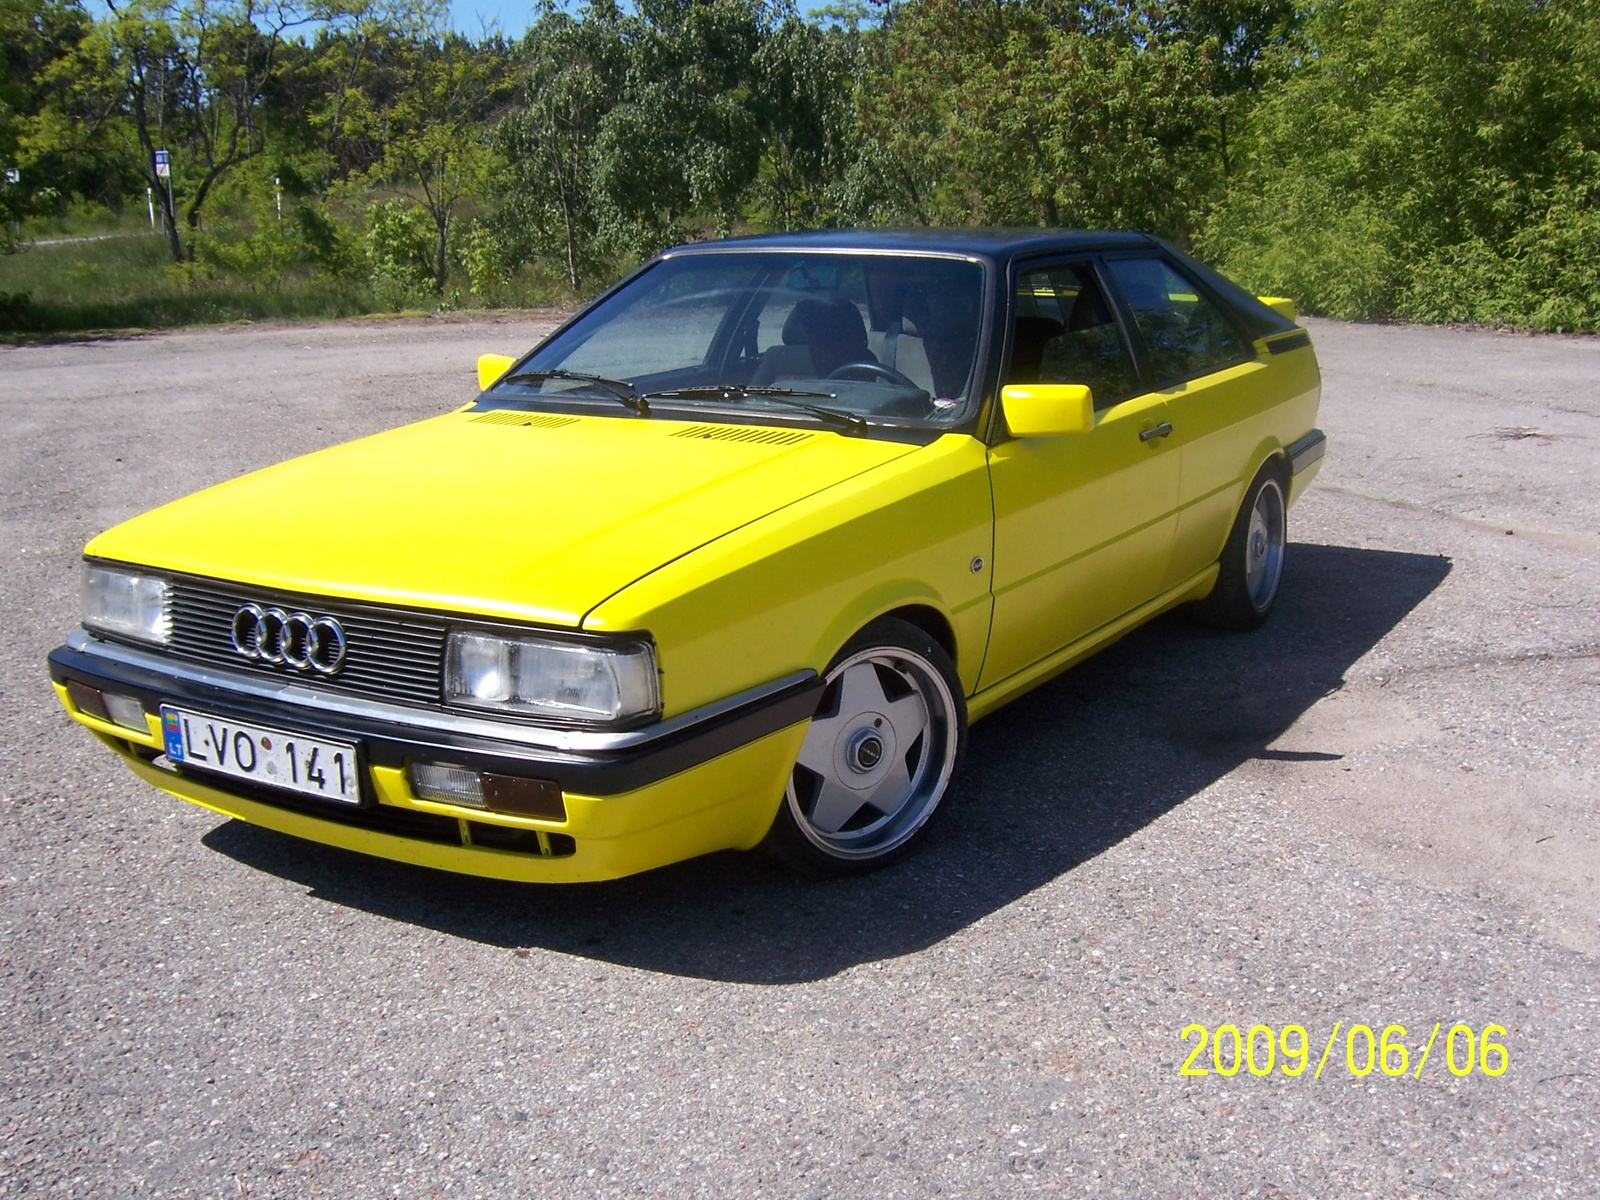 1985 Audi Coupe - Pictures - 1985 Audi Coupe picture - CarGurus